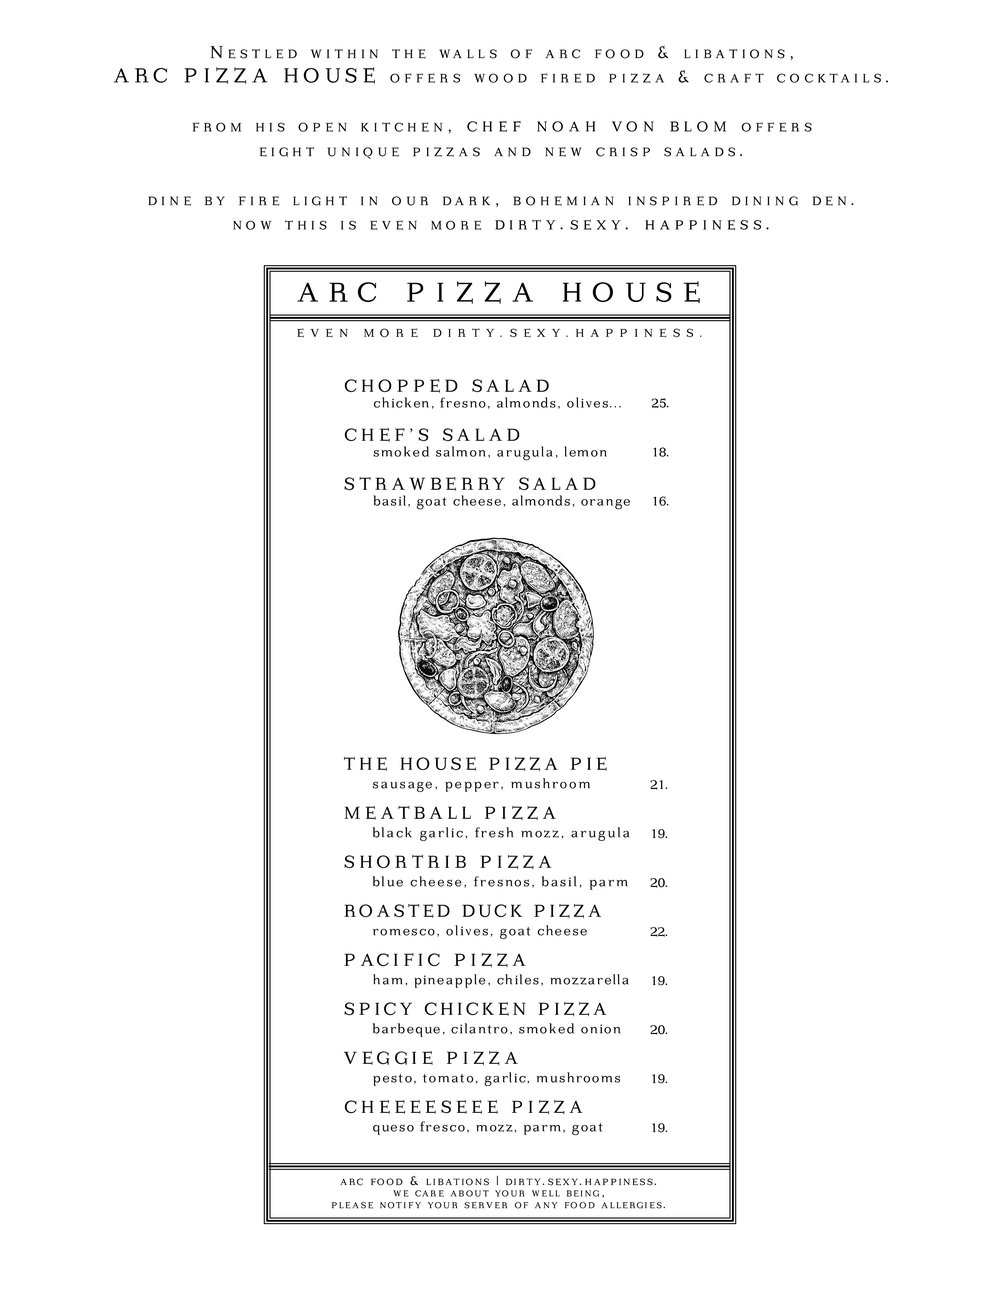 pizza house web copy.jpg